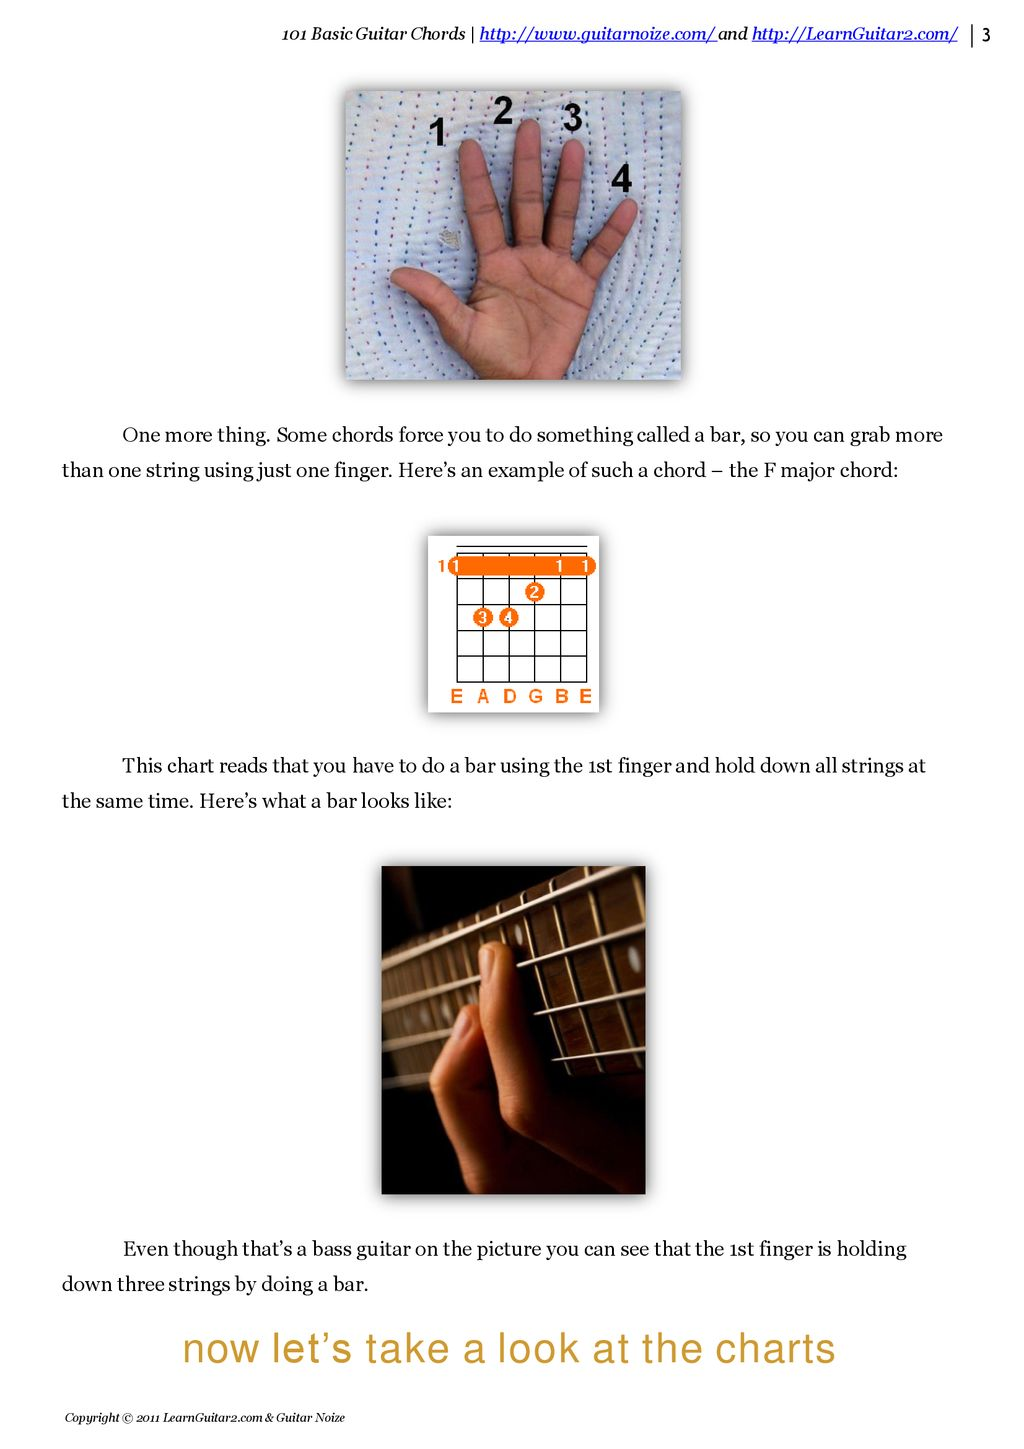 101 Basic Guitar Chords Introduces Ppt Download Strings Diagram Illustration E A D G B Now Lets Take Look At The Charts